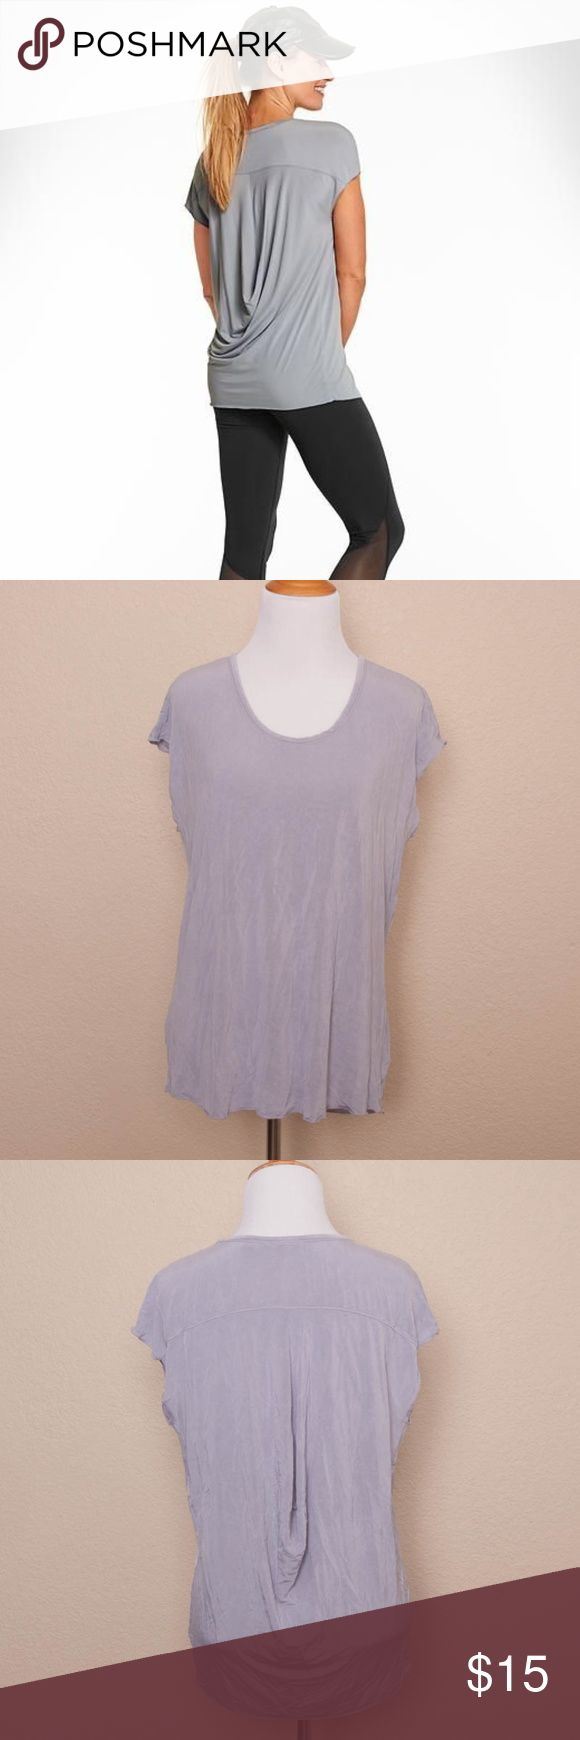 "Athleta Ciao Bella Draped Back Tunic Top ""Ciao Bella Tunic""  Gray, semi-sheer, silky jersey tee with draped back  94% Cupro, 6% Spandex  Machine wash  Made in Vietnam  Measurements:  Bust: 38""  Waist: 36""  Overall Length: 25""  Condition:  Top is clean and shows minimal wear; no holes, stains, pulls, or pilling. Athleta Tops"